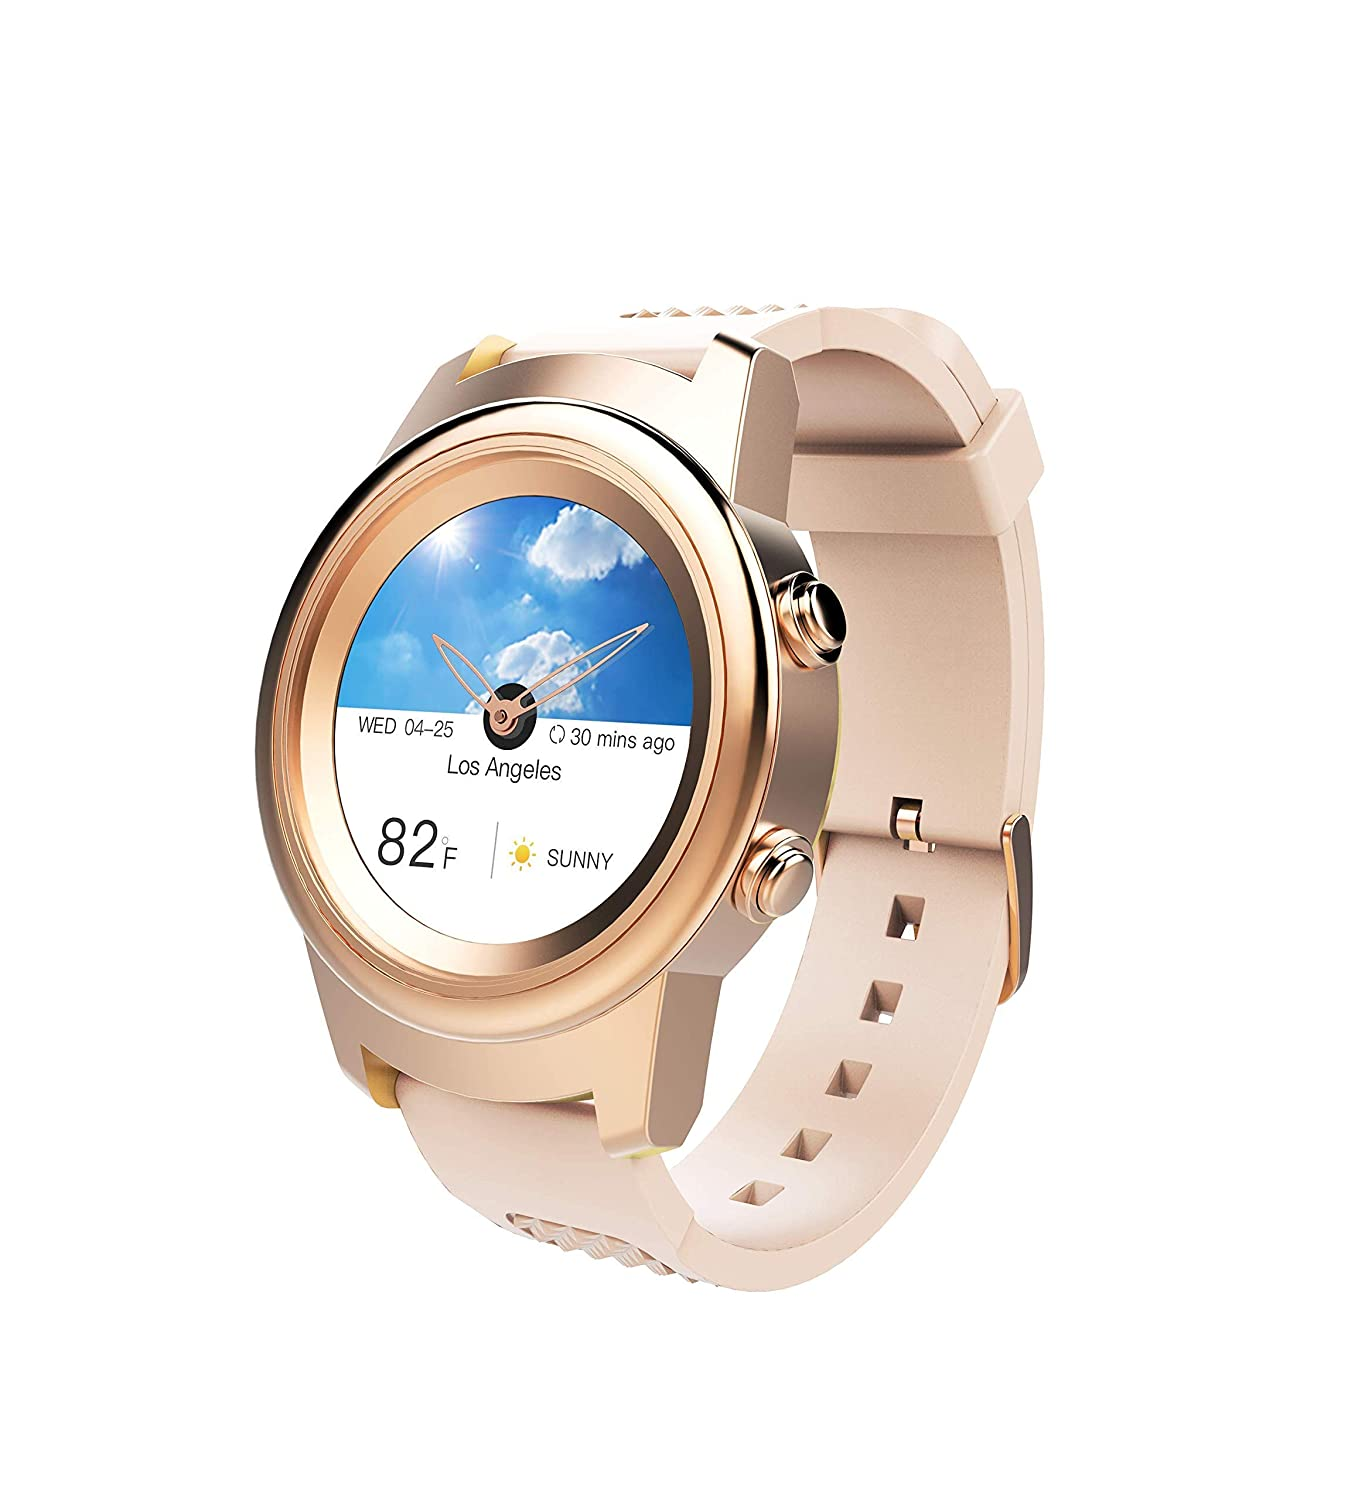 3Plus Callie Hybrid SmartWatch for Women, 30 Day Battery Heart Rate Monitor, Pedometer, TFT Vibrant Display, Sleep Tracker, Calorie Step Counter, Music Controls, for iPhone and Android Rose Gold